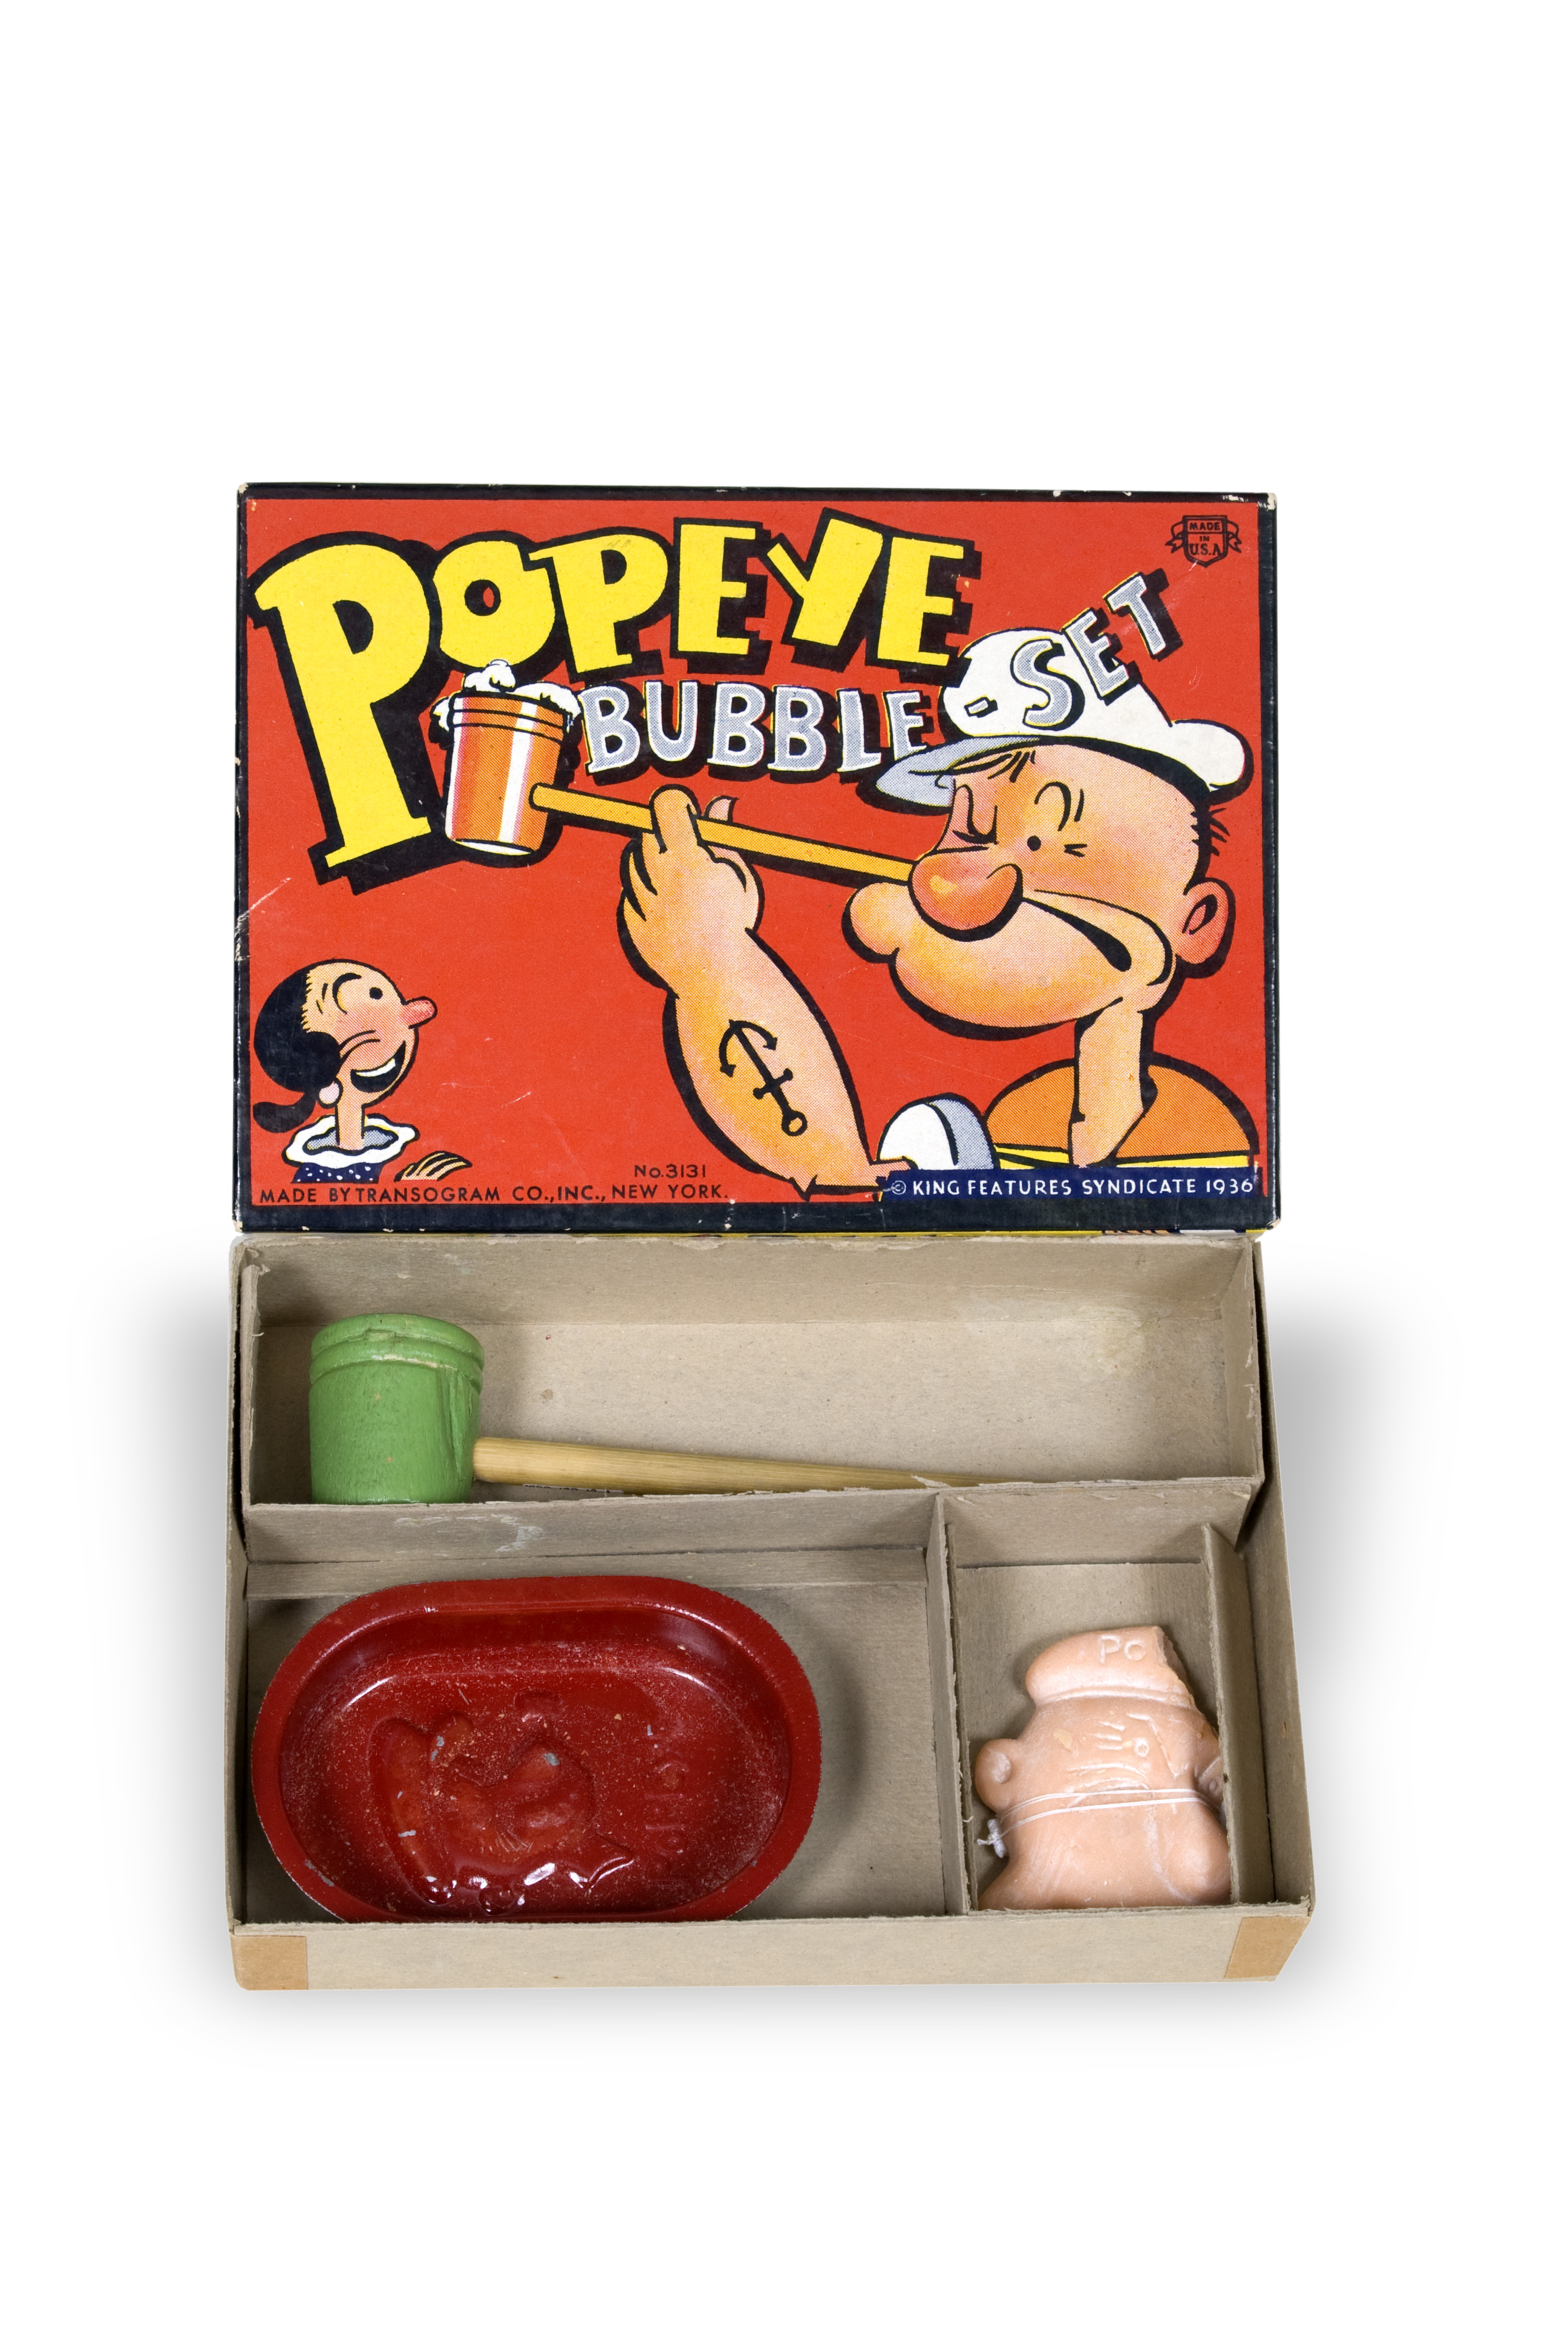 Popeye Bubble Set